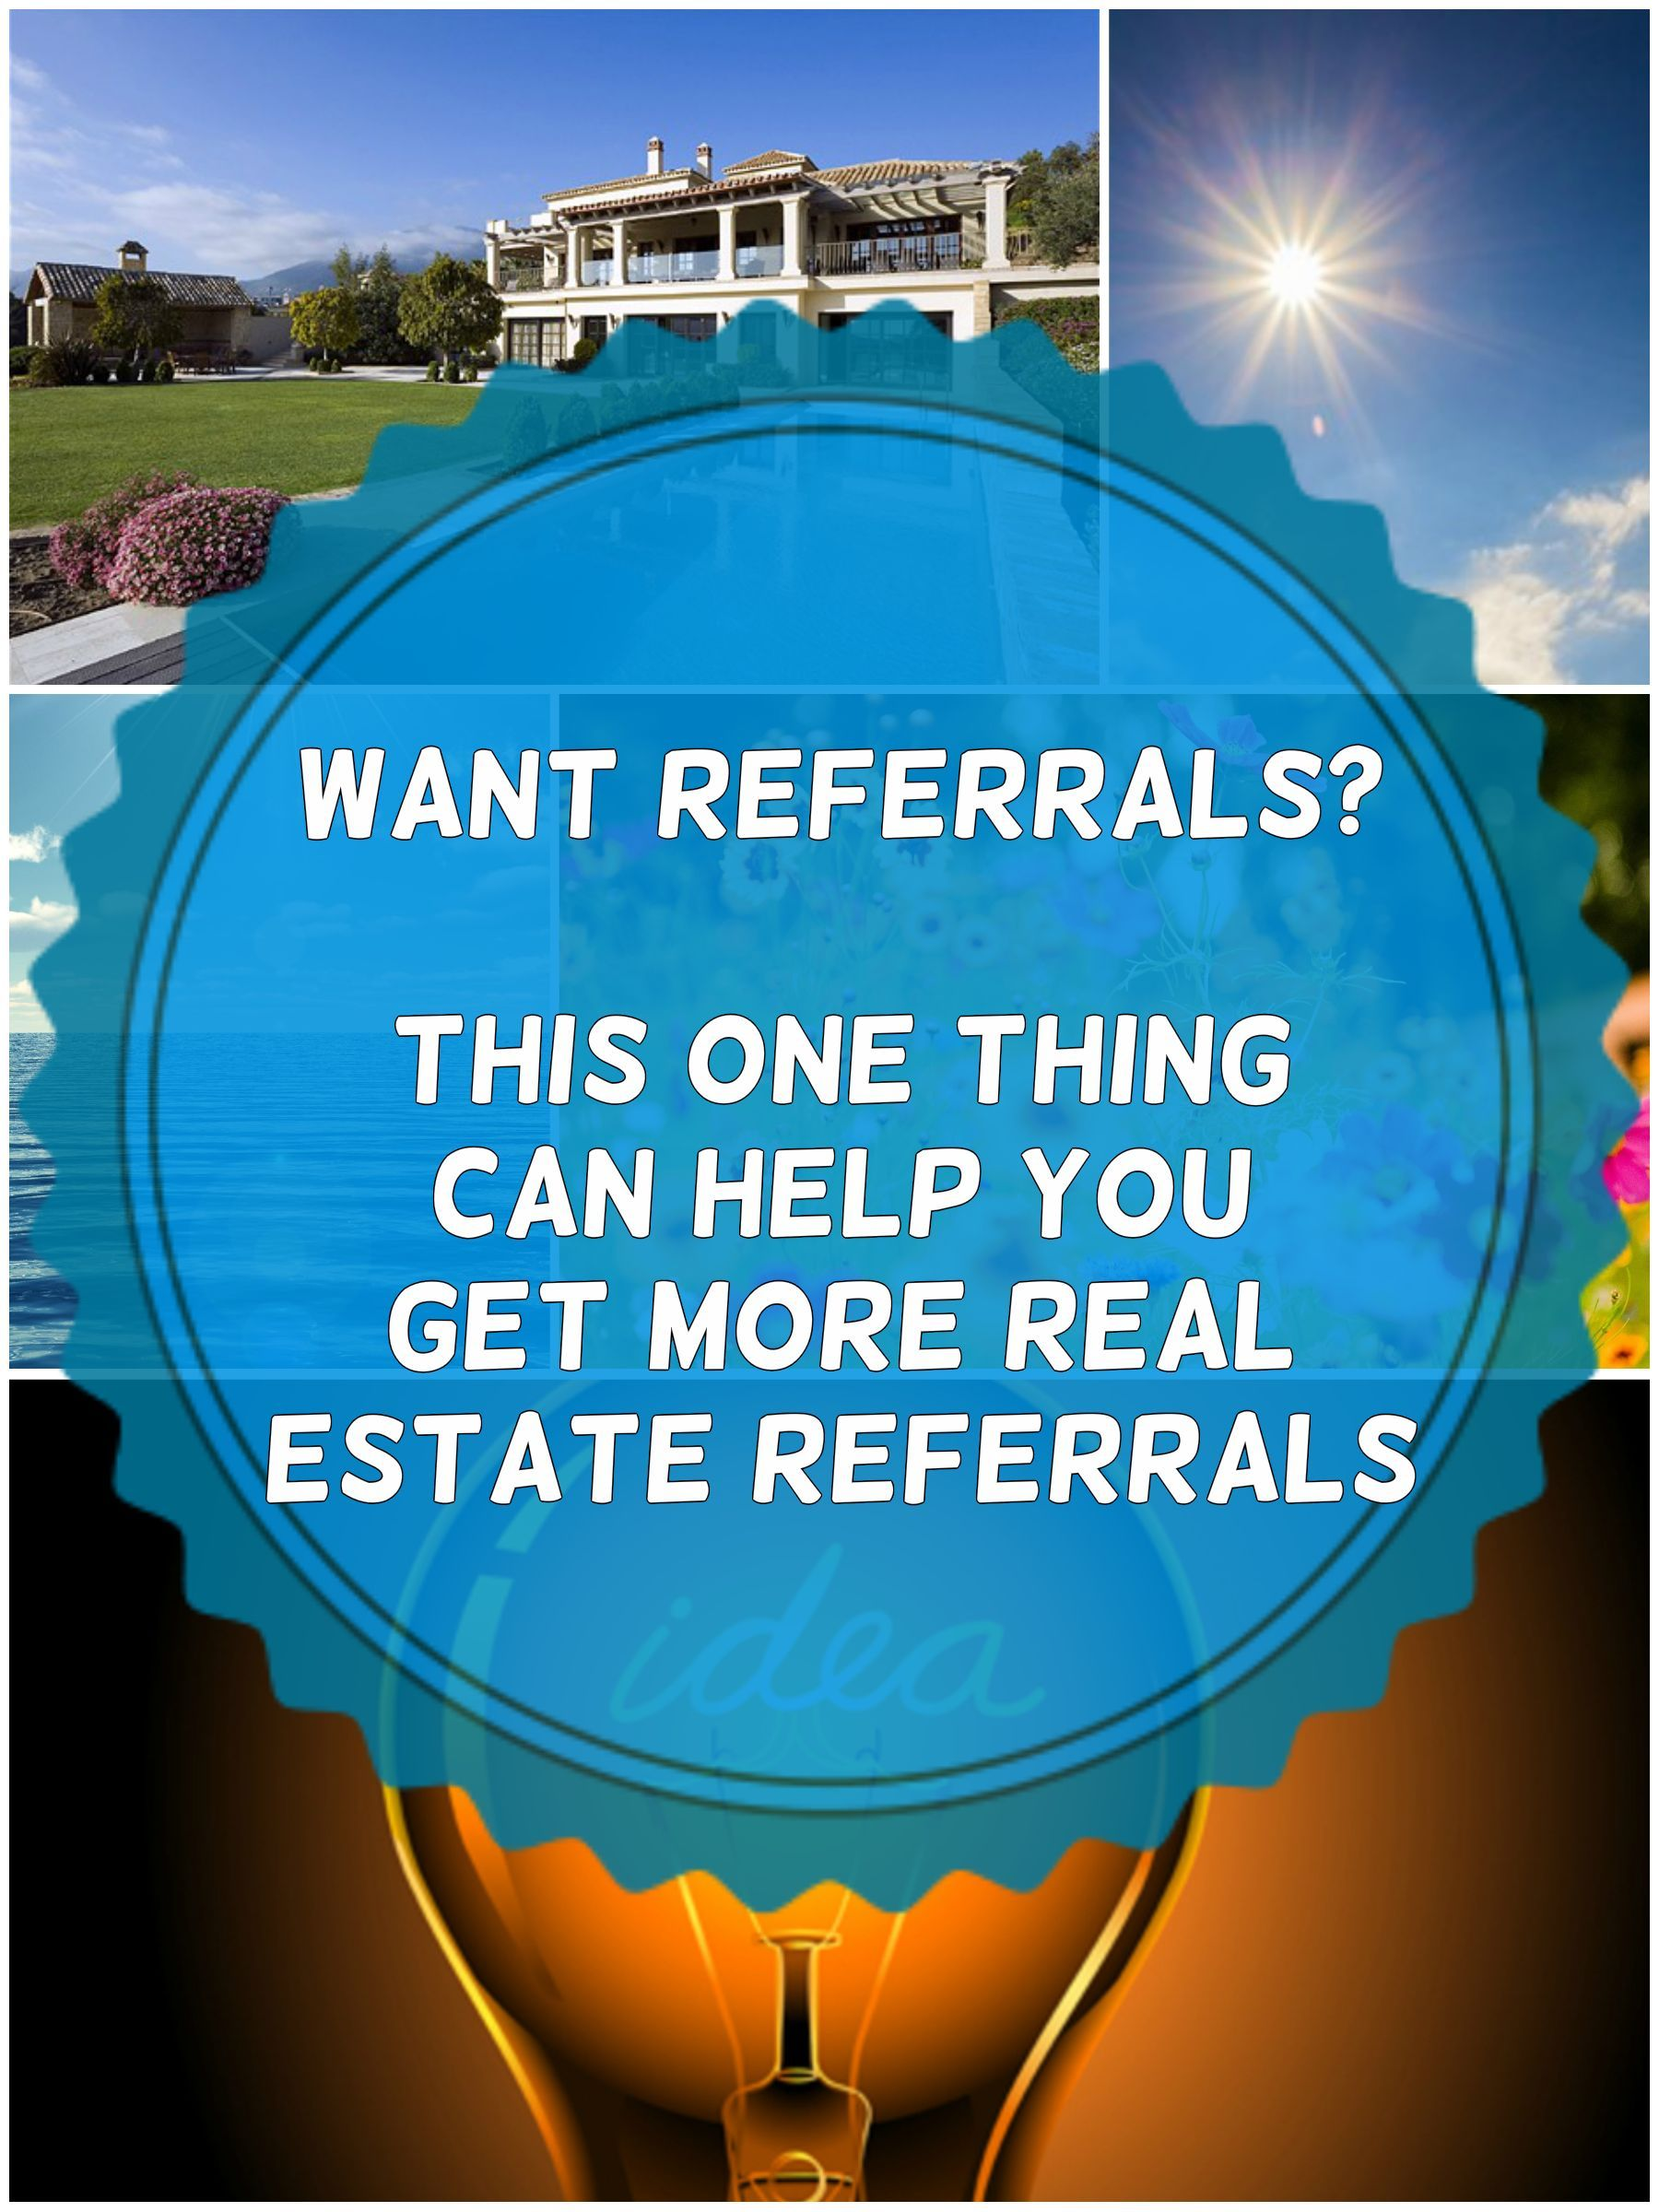 how to ask for real estate referrals on facebook